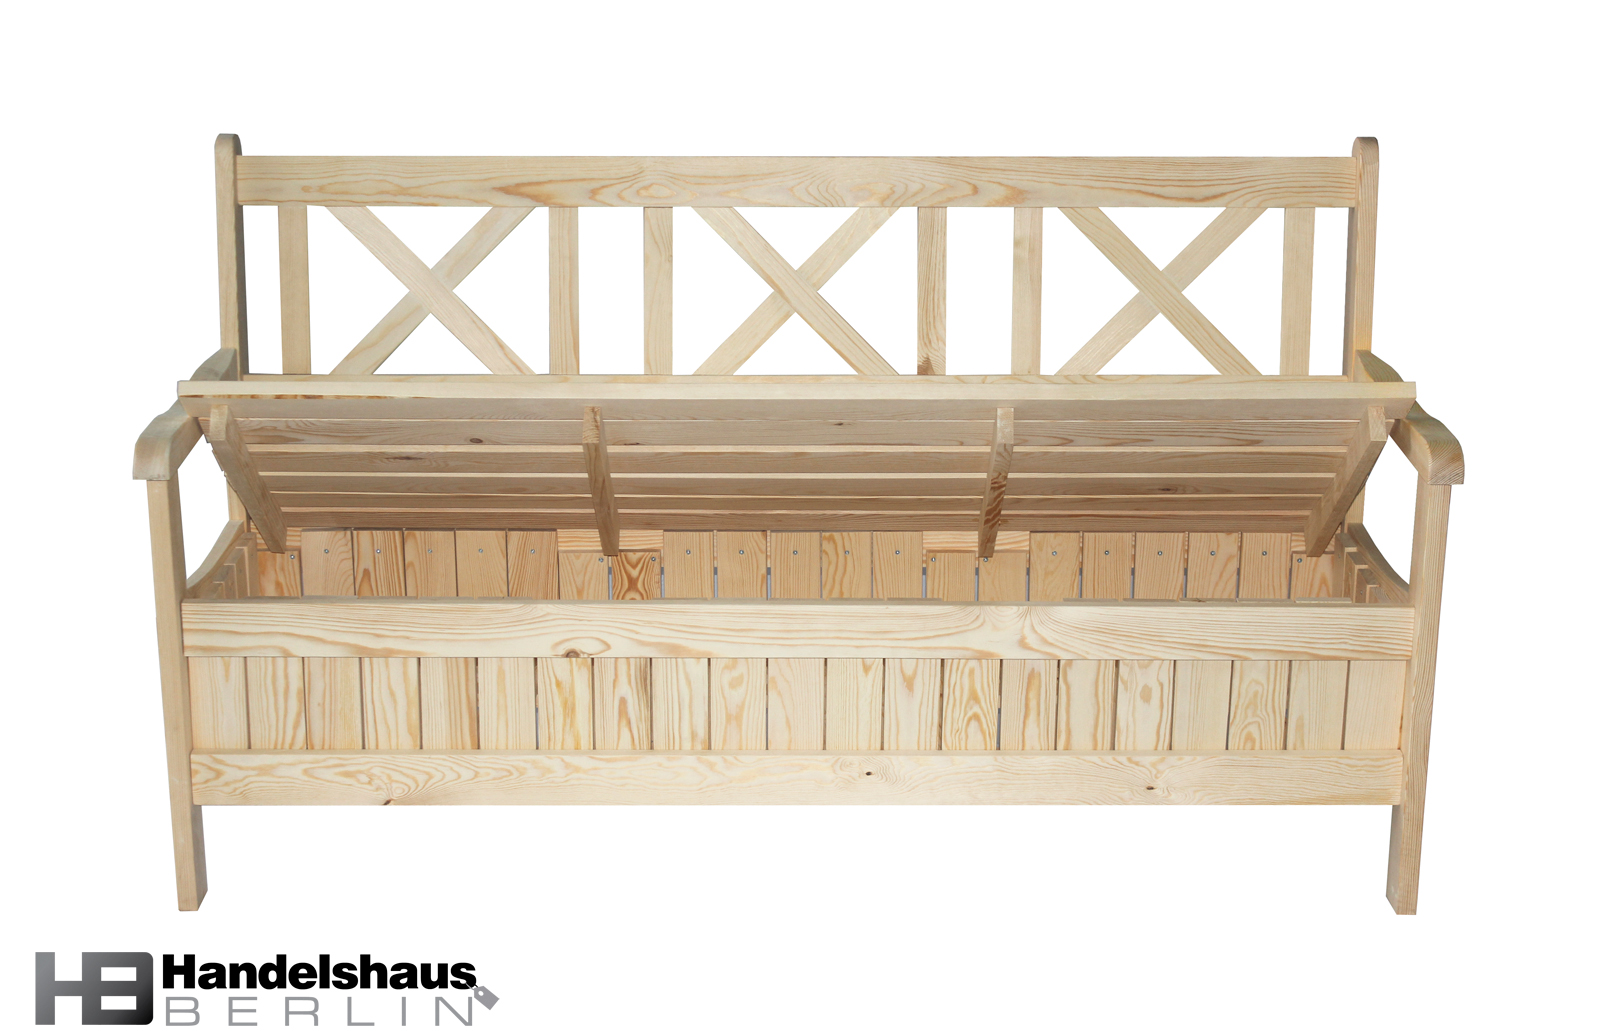 holzbank gartenbank sitzbank inkl stauraum 3 sitzer kiefer massiv ebay. Black Bedroom Furniture Sets. Home Design Ideas